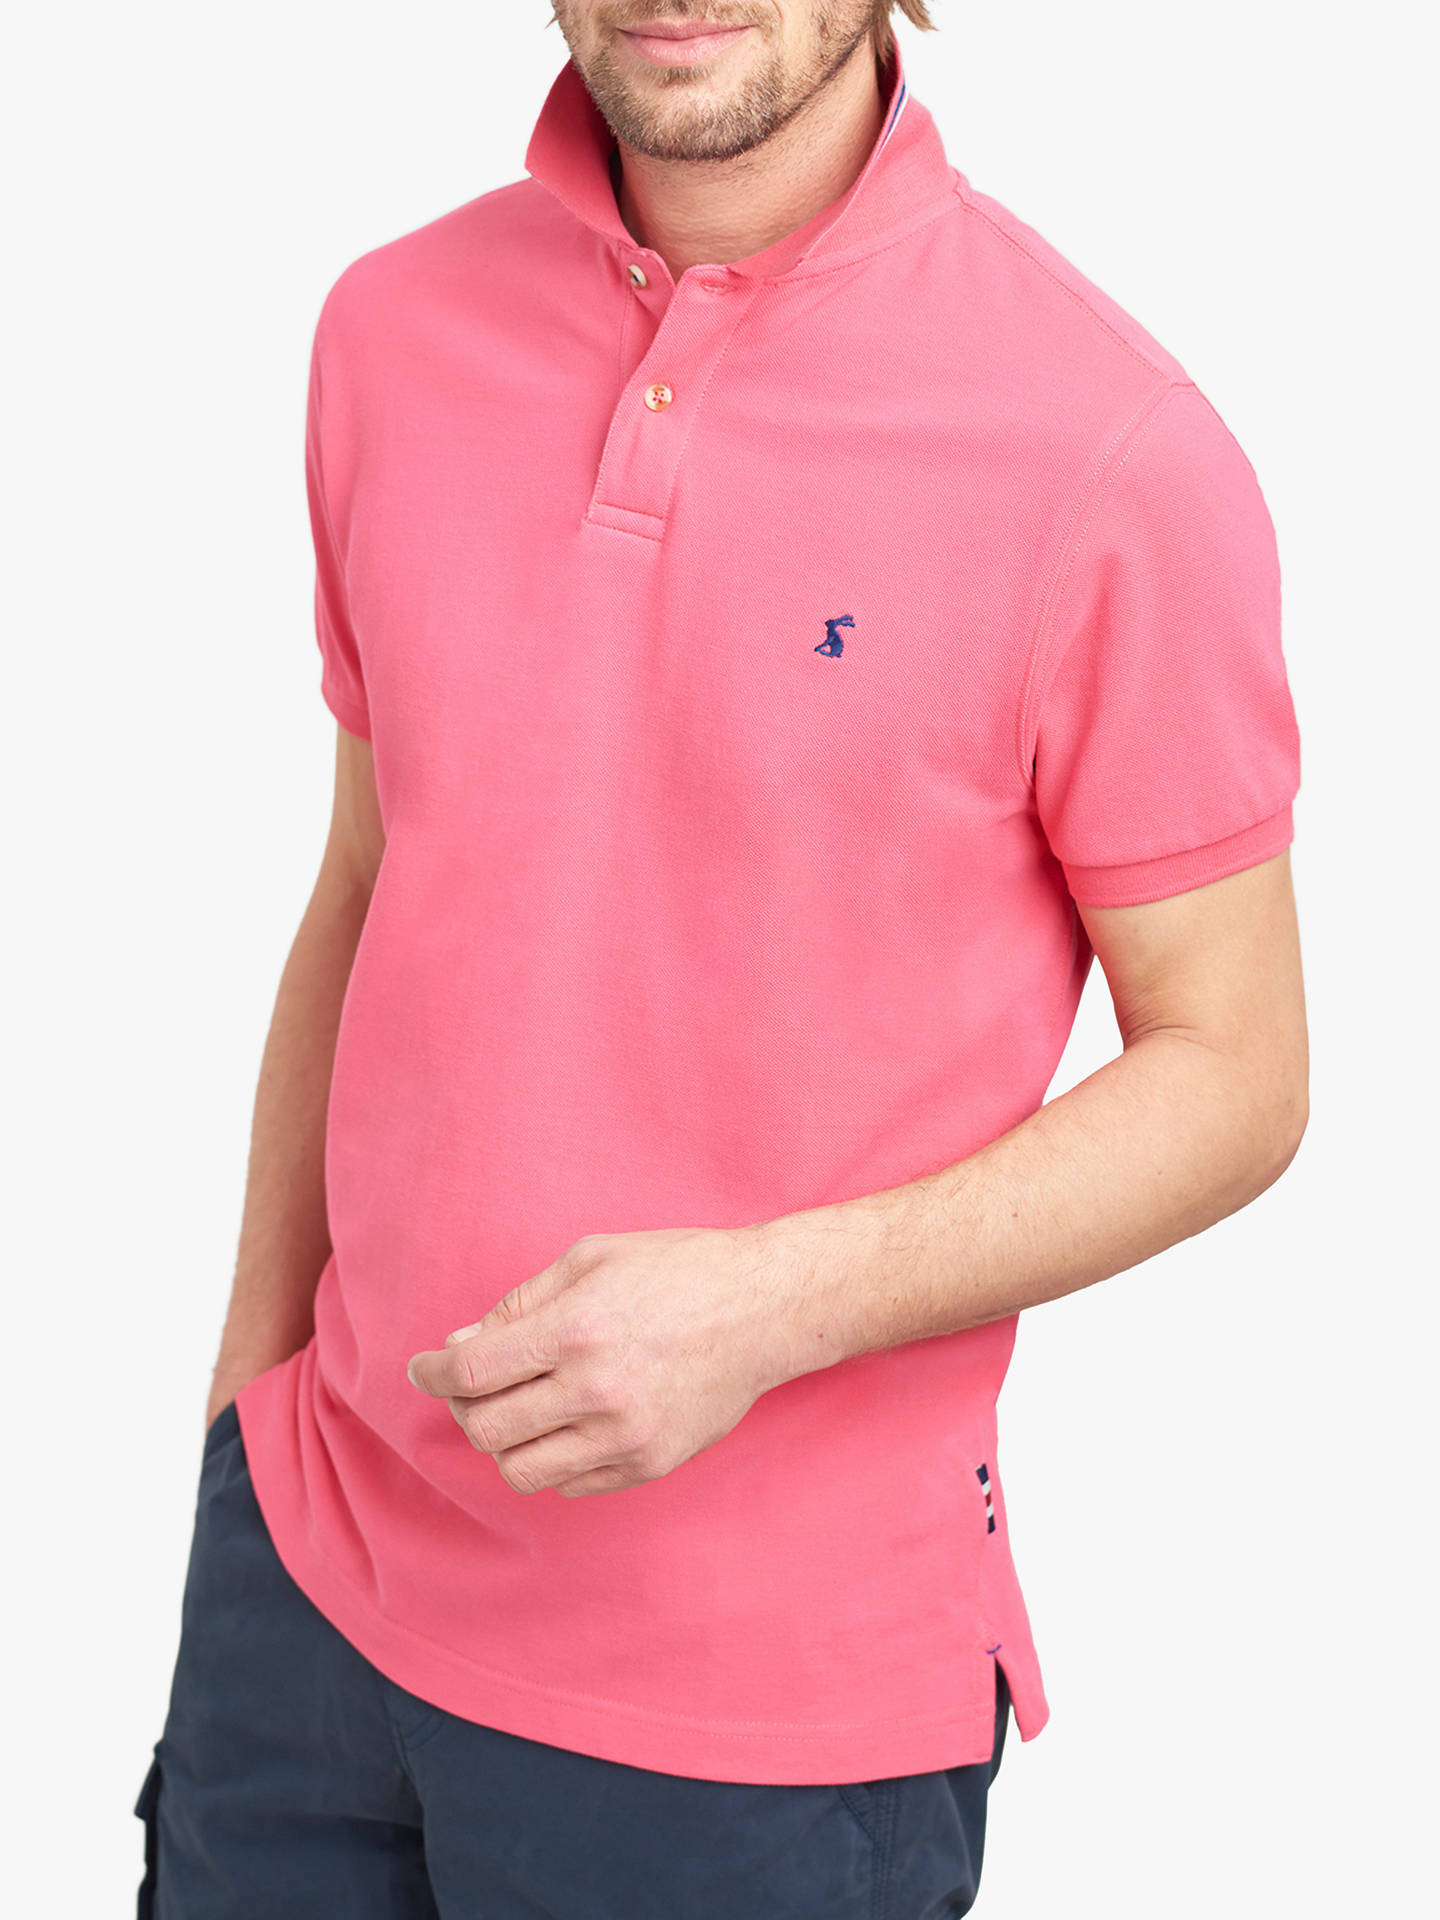 free shipping d0ff6 2014c Buy Joules New Maxwell Slim Fit Polo Shirt, Bright Pink, XS Online at  johnlewis ...